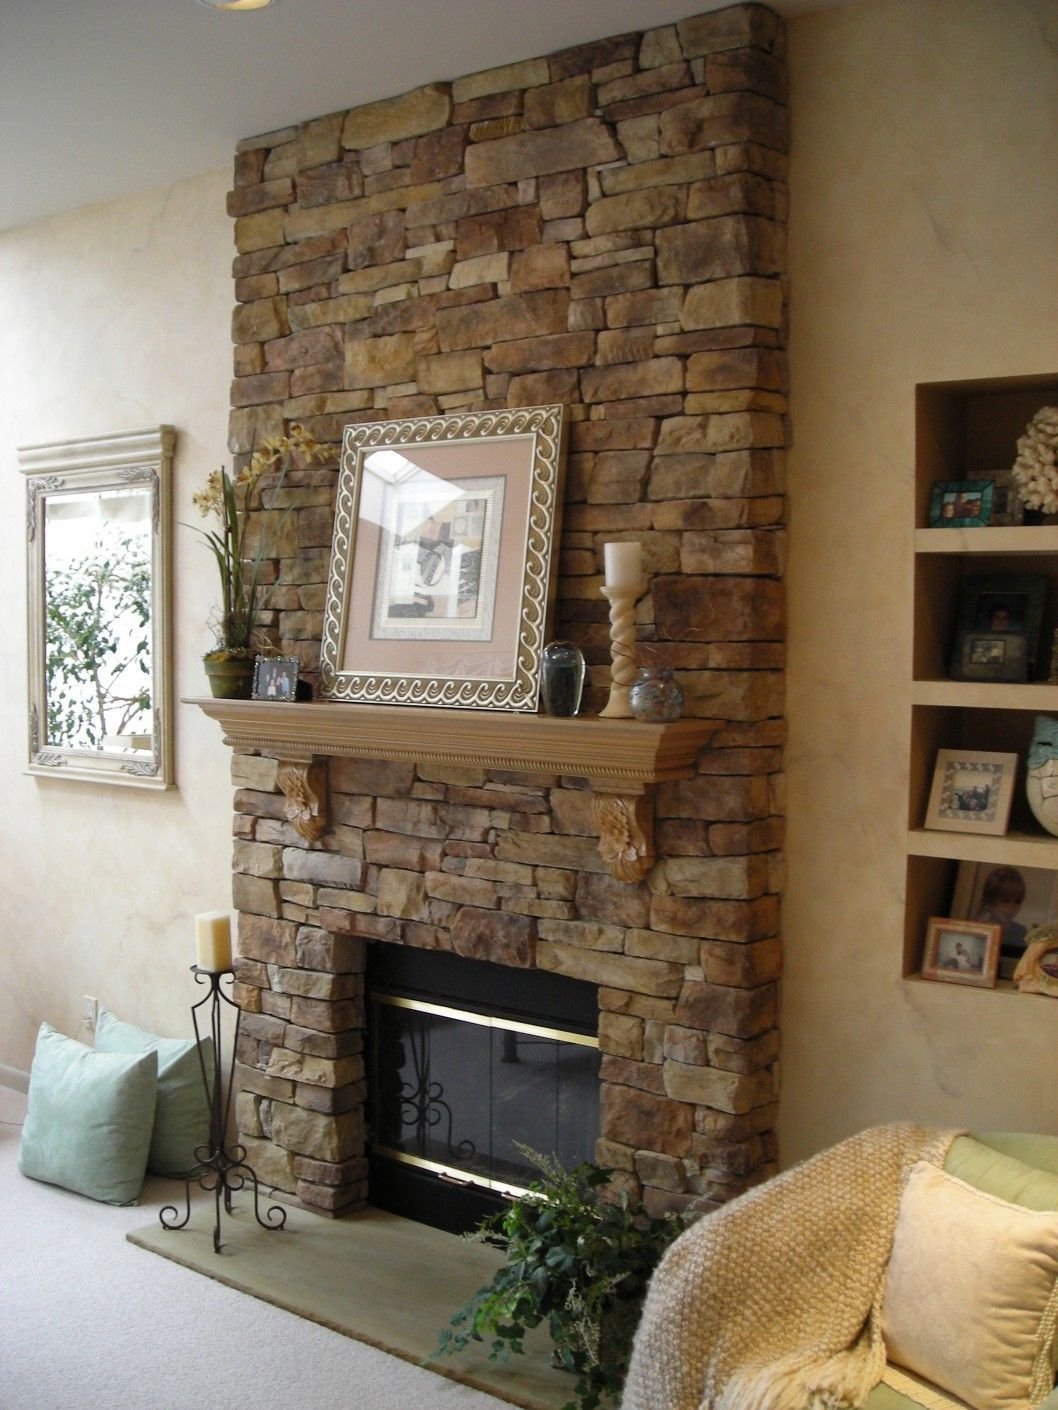 Architecture Living Room Decoration Amazing Natural Exposed Stone Wall With Wooden Booksh Stone Fireplace